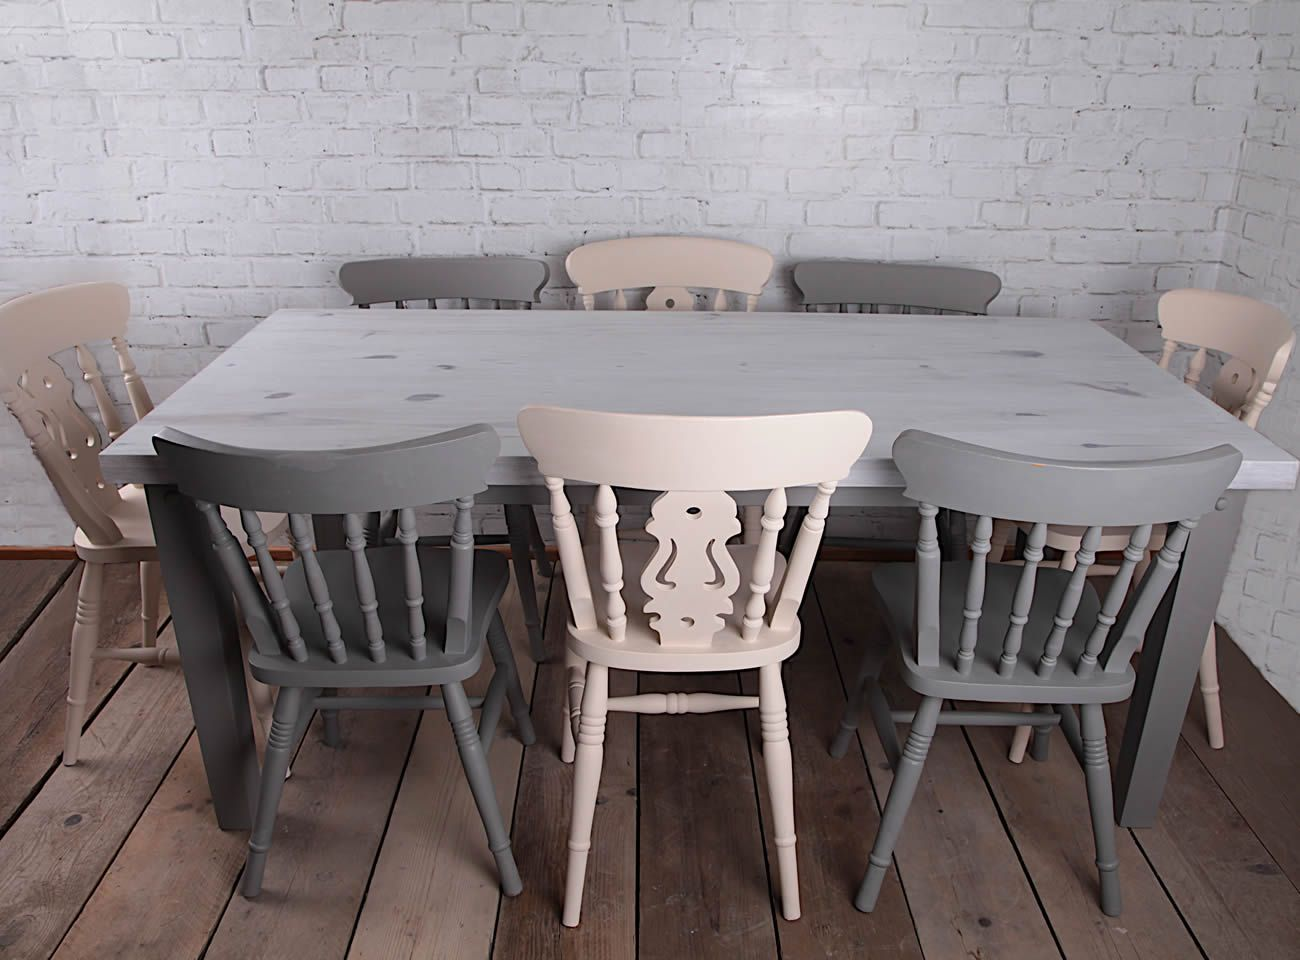 Vintage Farmhouse Country Home Shabby Chic Style Dining Table Chair Set Hand